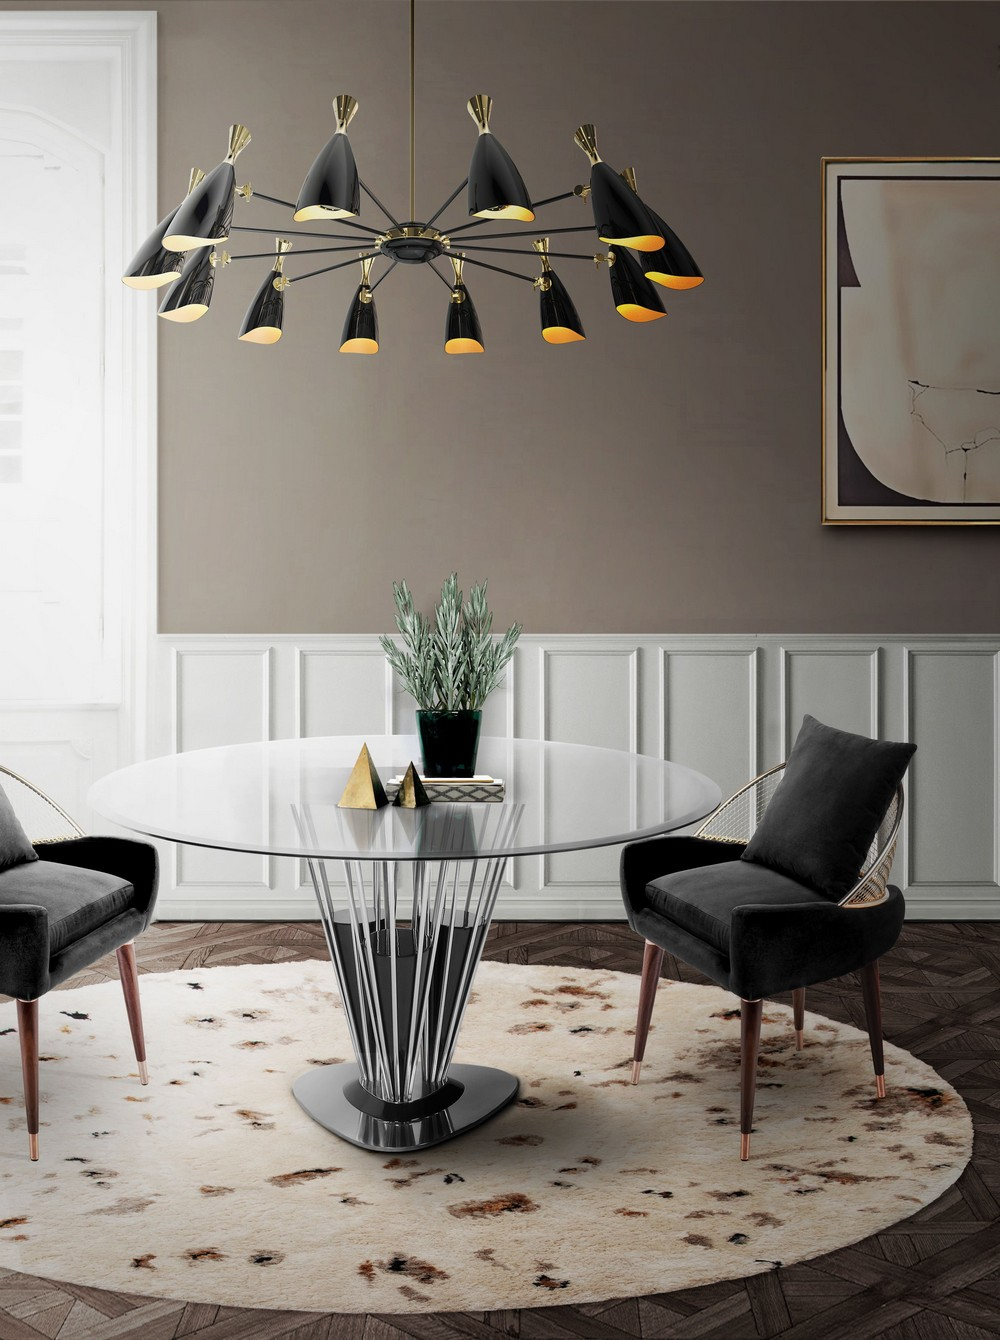 2020 In Retrospective: The Best Dining Tables and Chairs dining tables 2020 In Retrospective: The Best Dining Tables and Chairs mR0LIkkQ